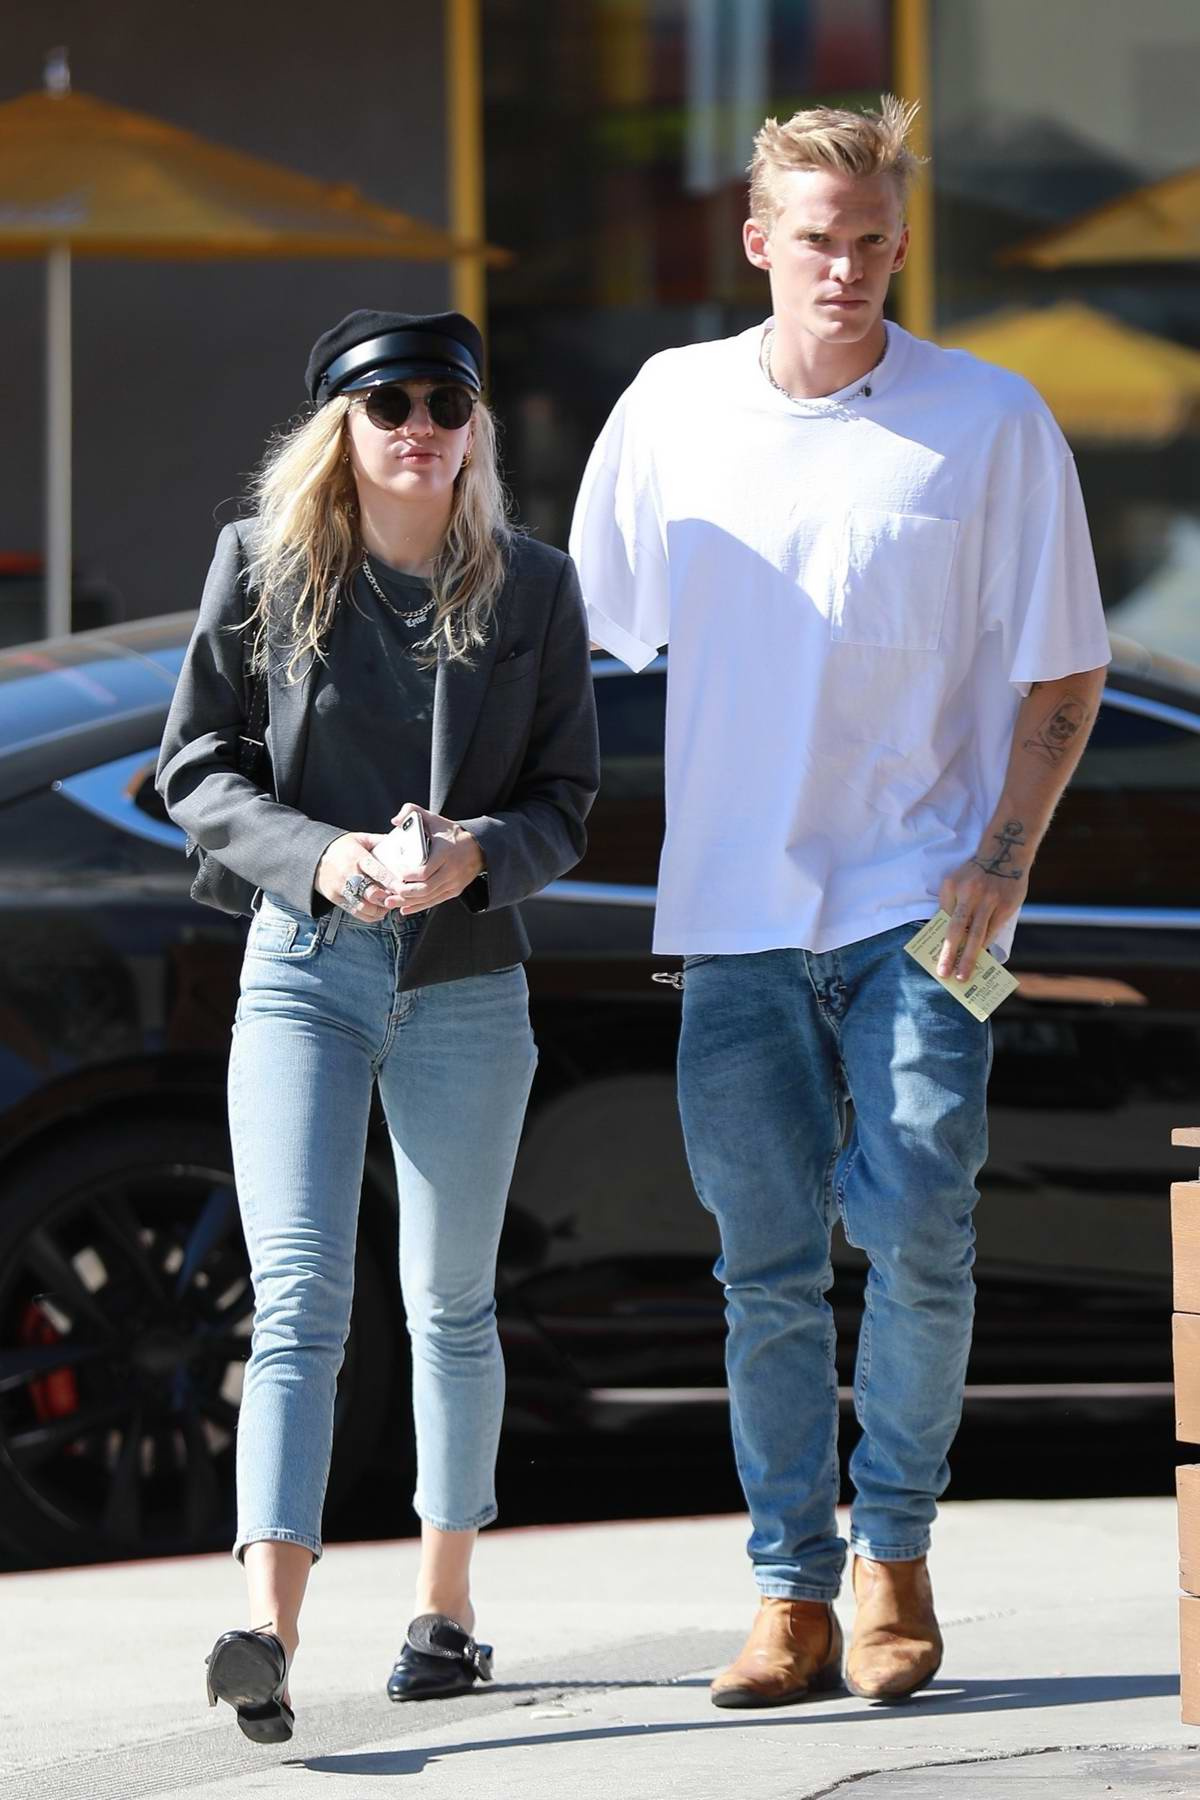 Miley Cyrus and Cody Simpson start their week with a lunch date in Los Angeles